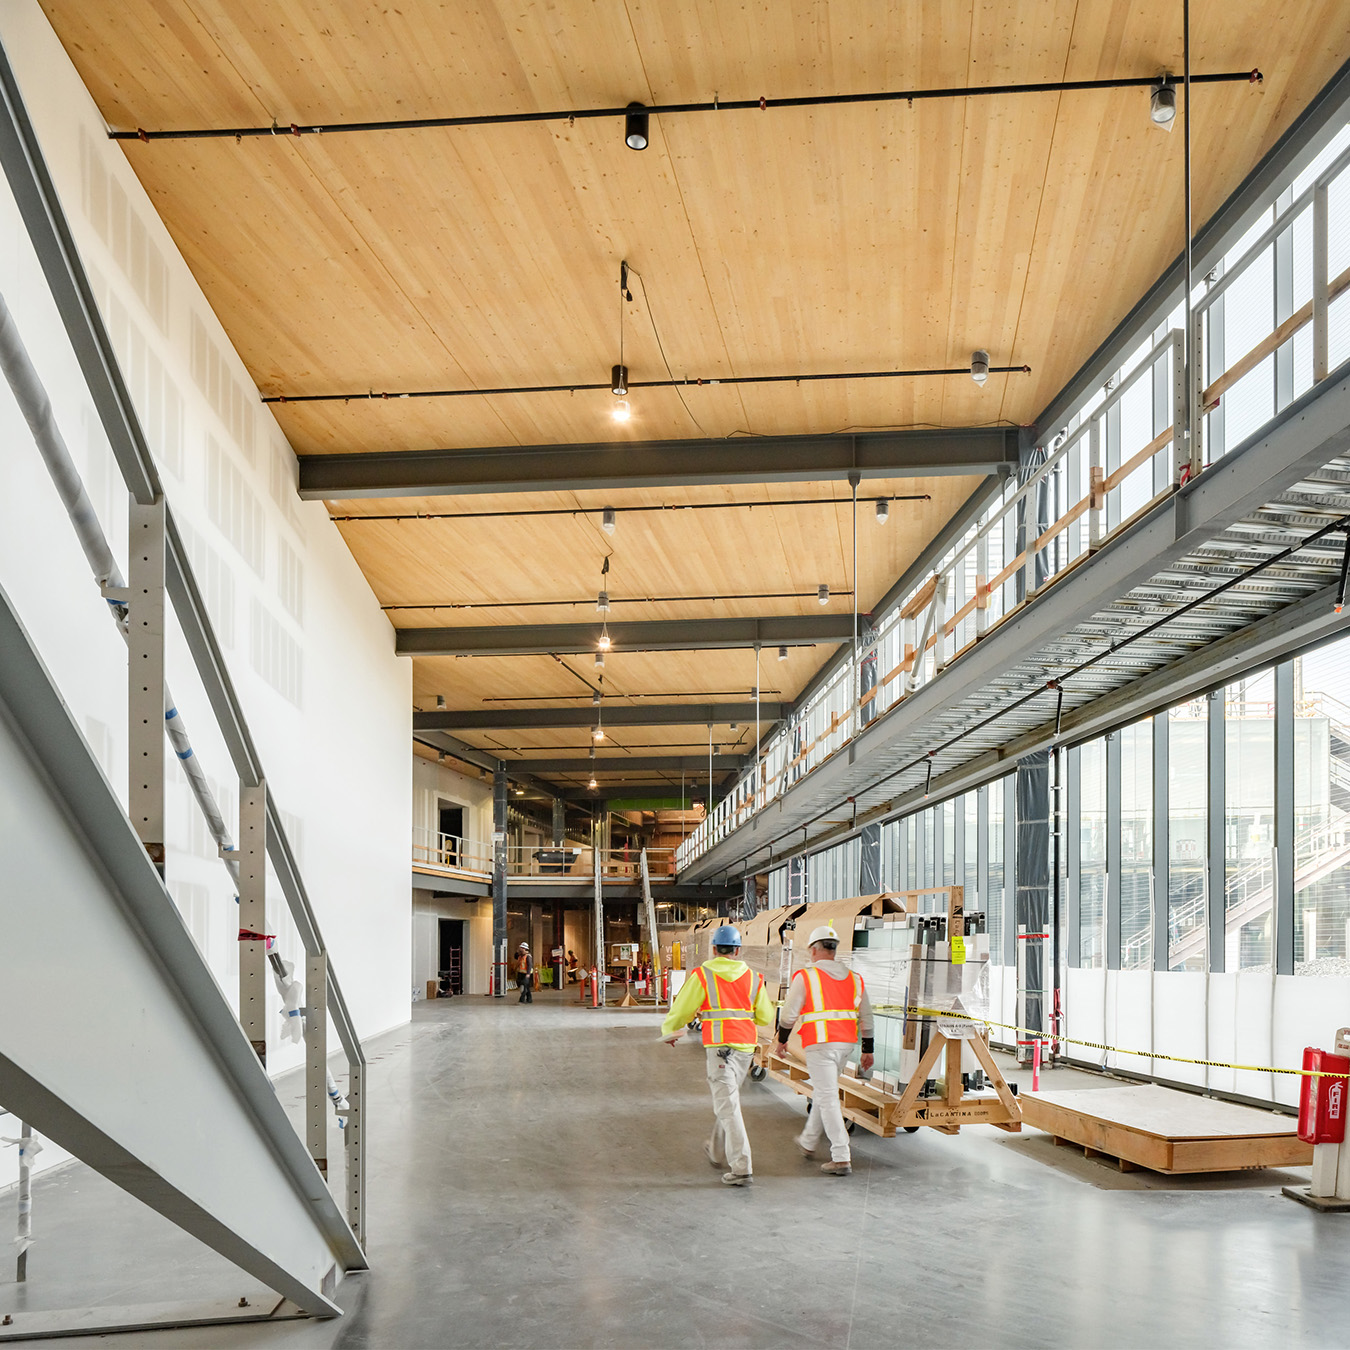 Mass Timber Construction Lobby with Workers Silicon Valley California